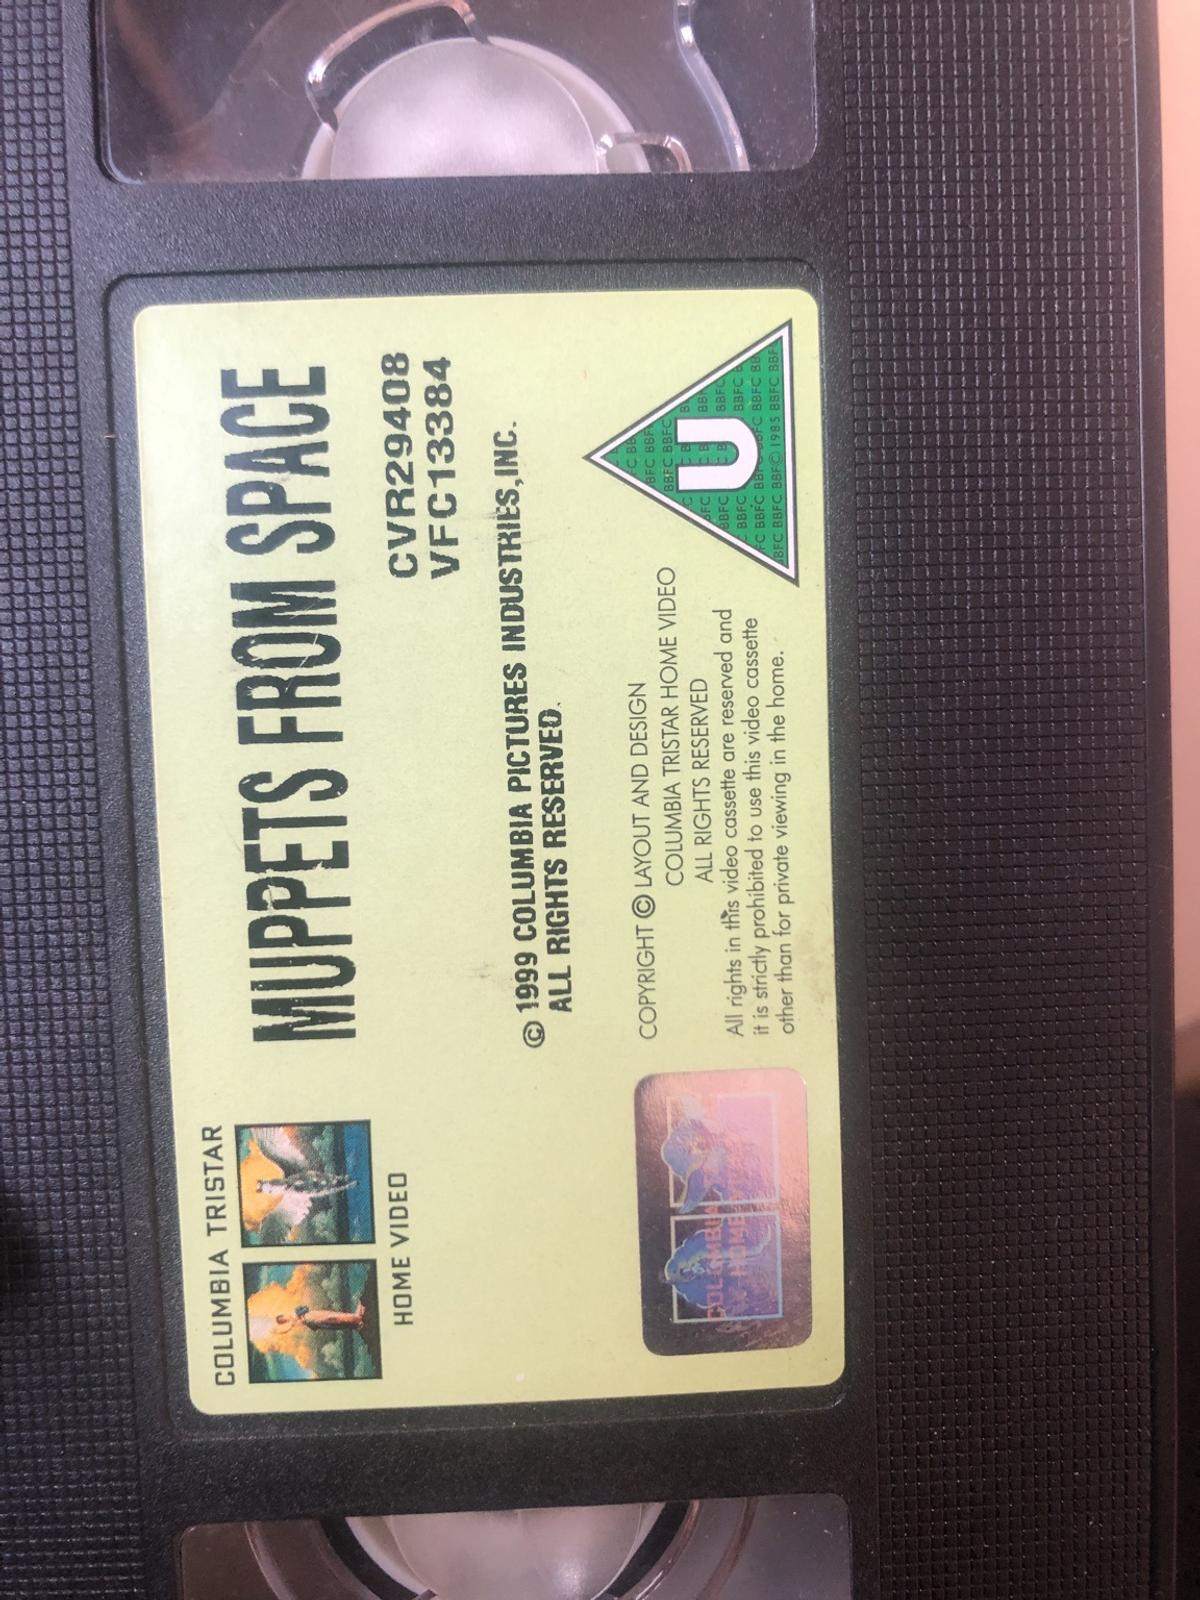 VHS videos can be separately sold too